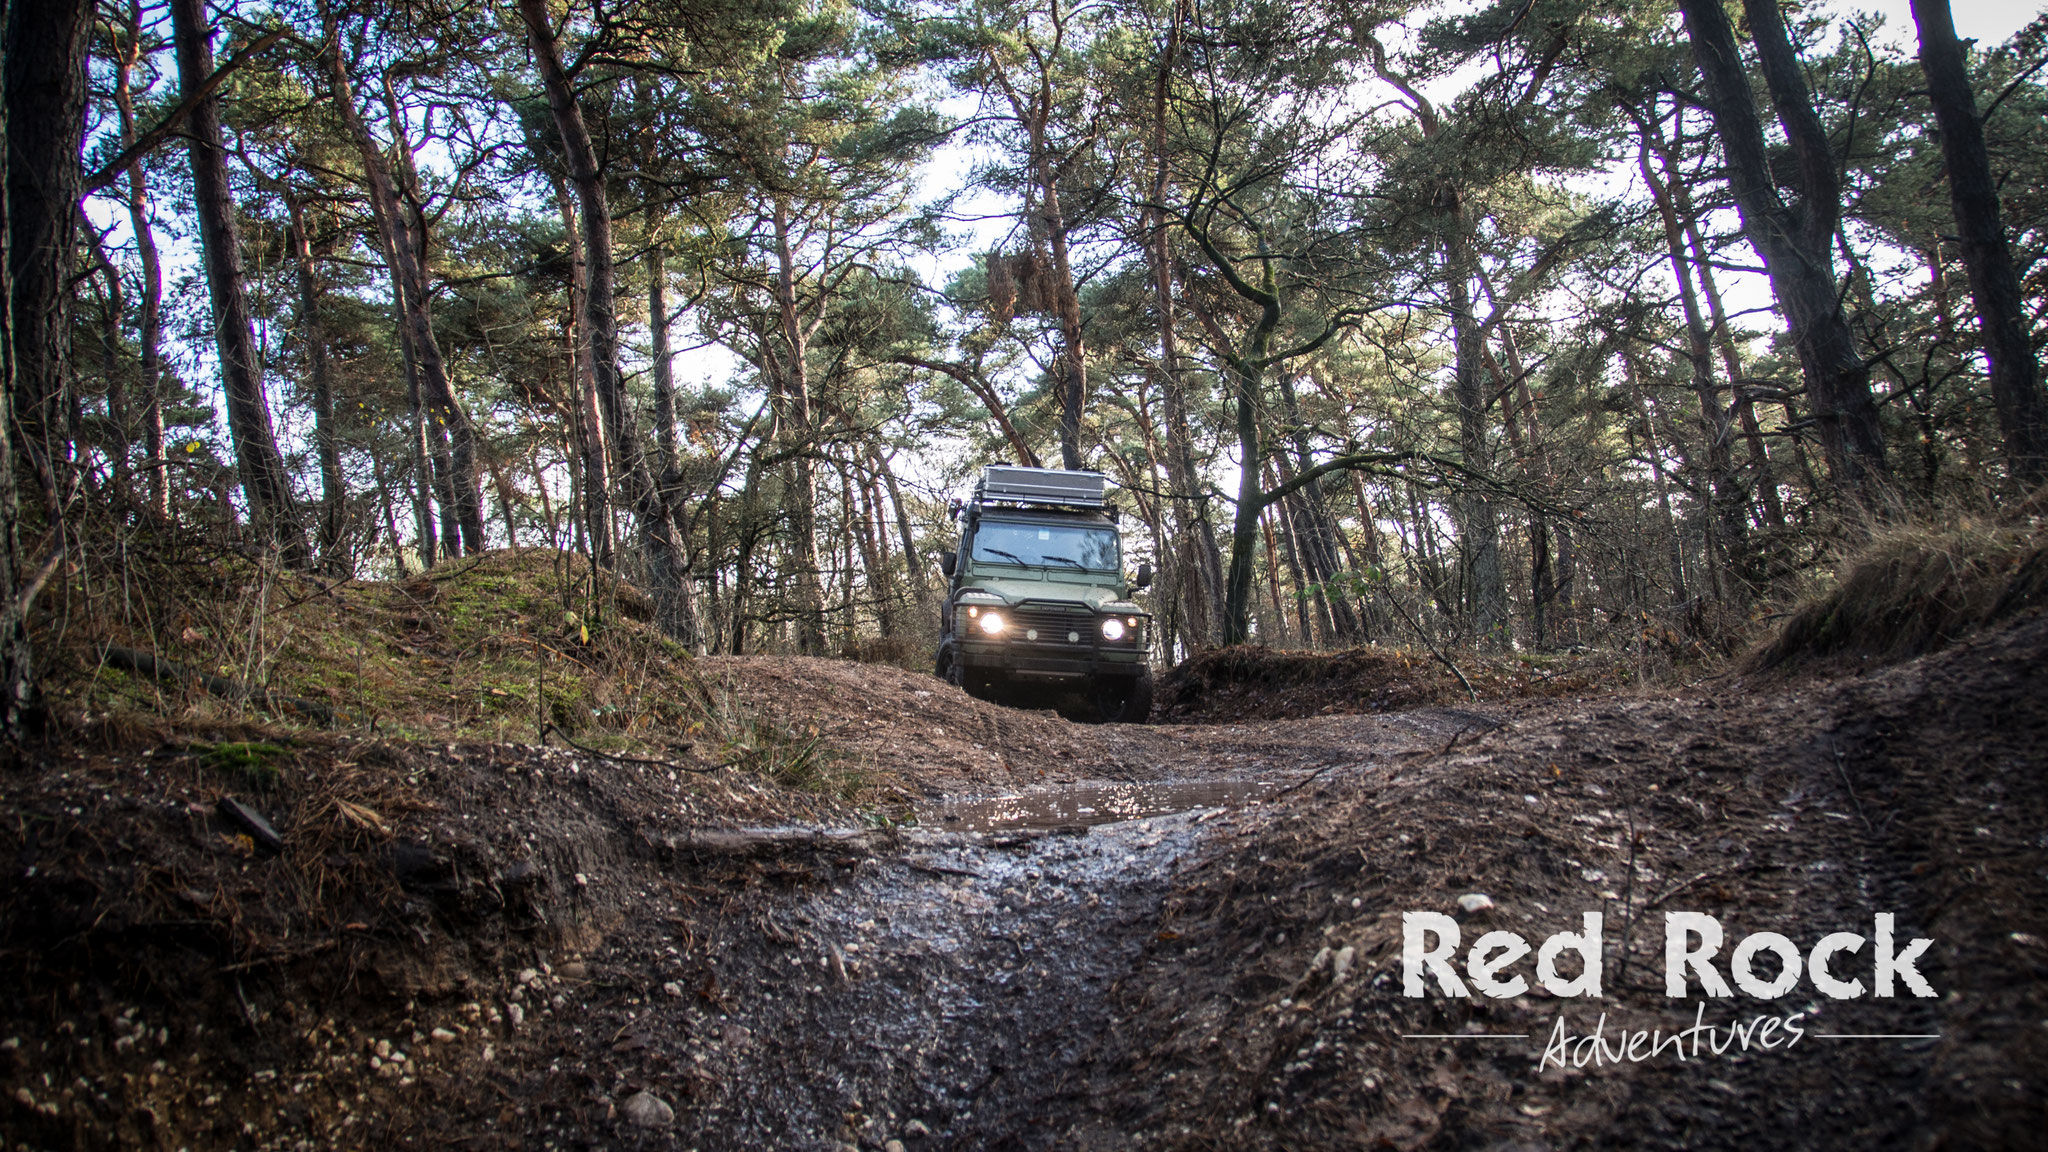 Offroad Abenteuer Tag - Dezember 2018